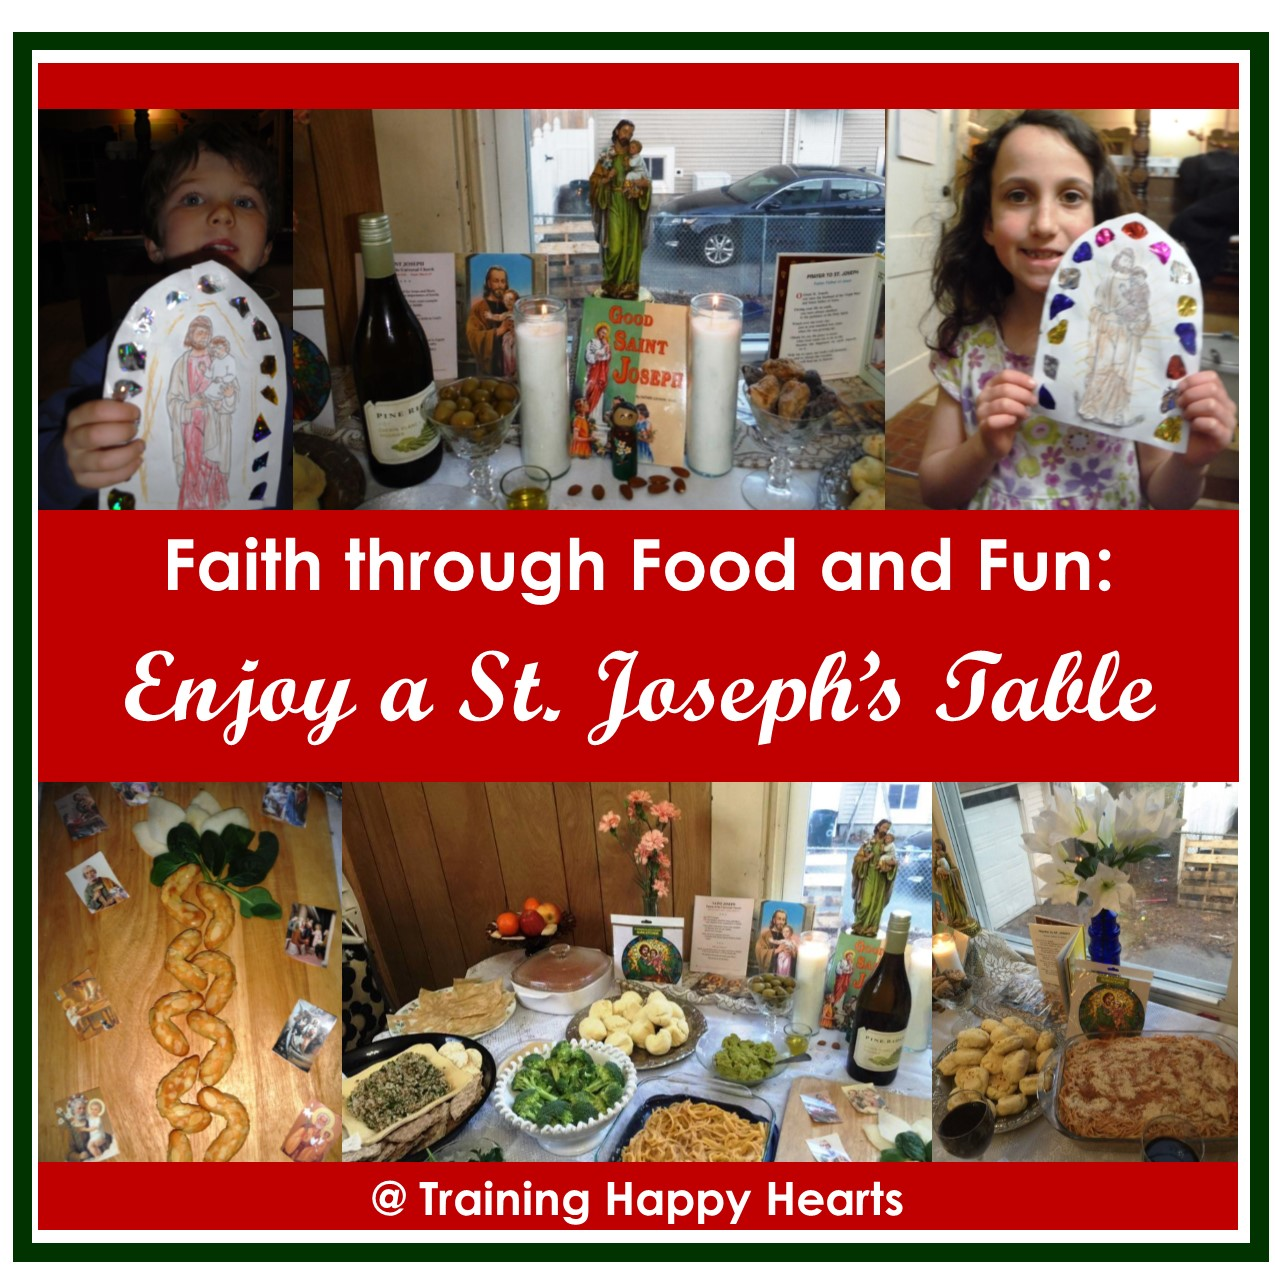 Enjoy a St. Joseph Table with Friends - Training Happy Hearts